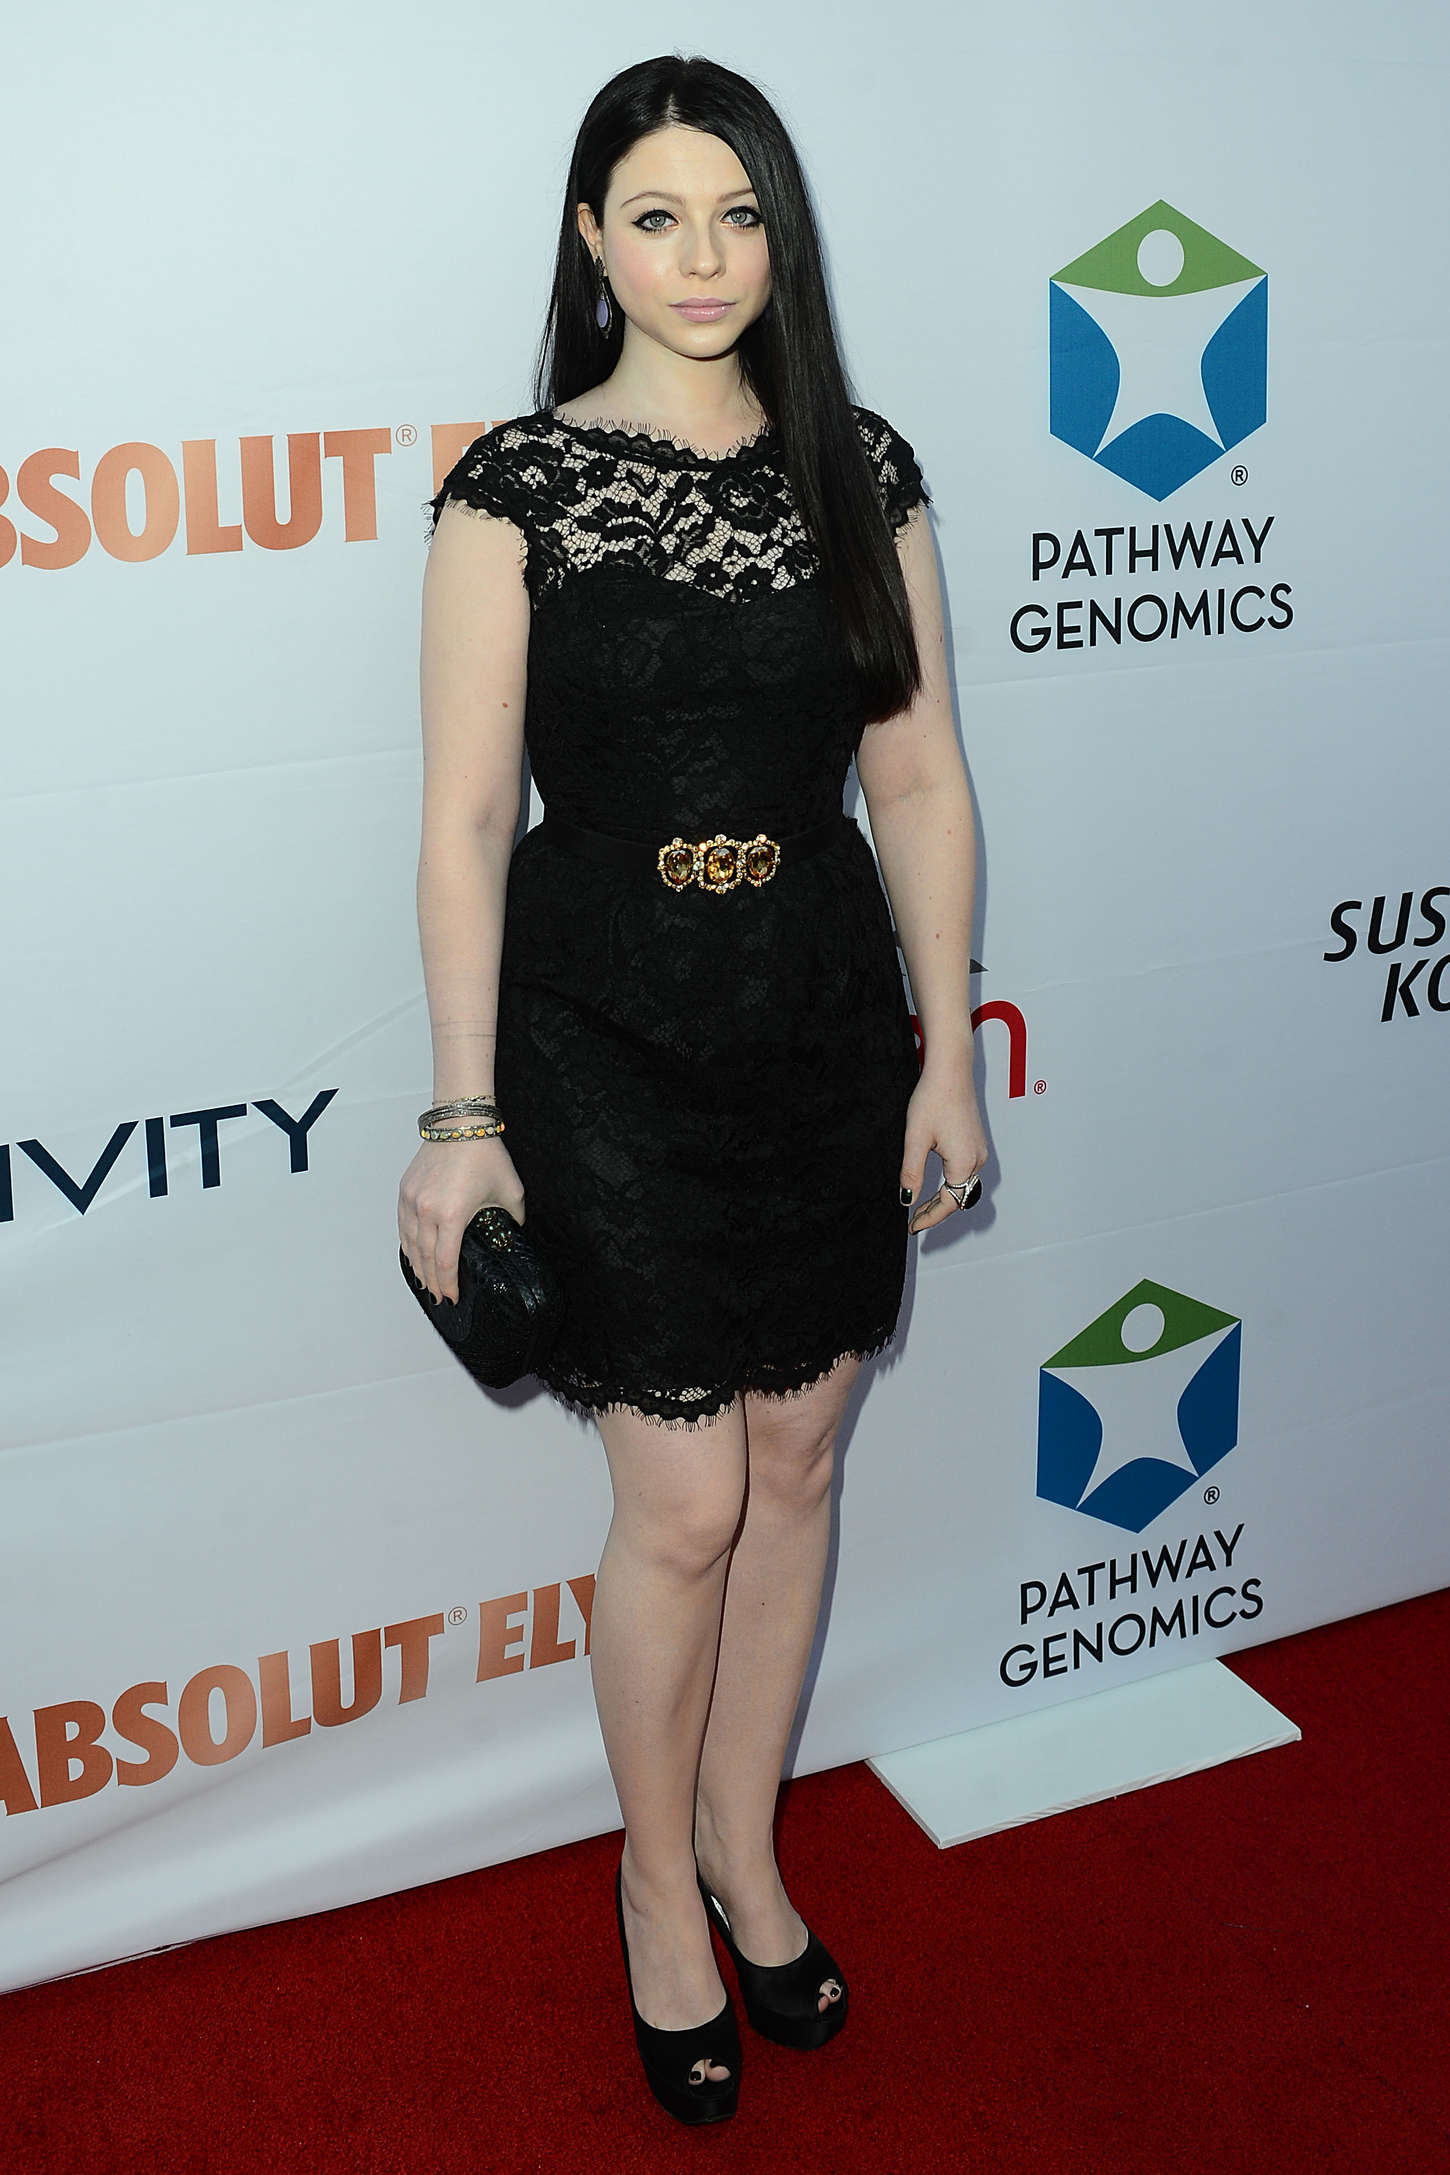 Michelle Trachtenberg Pathway To The Cure Fundraiser Benefit in Santa Monica